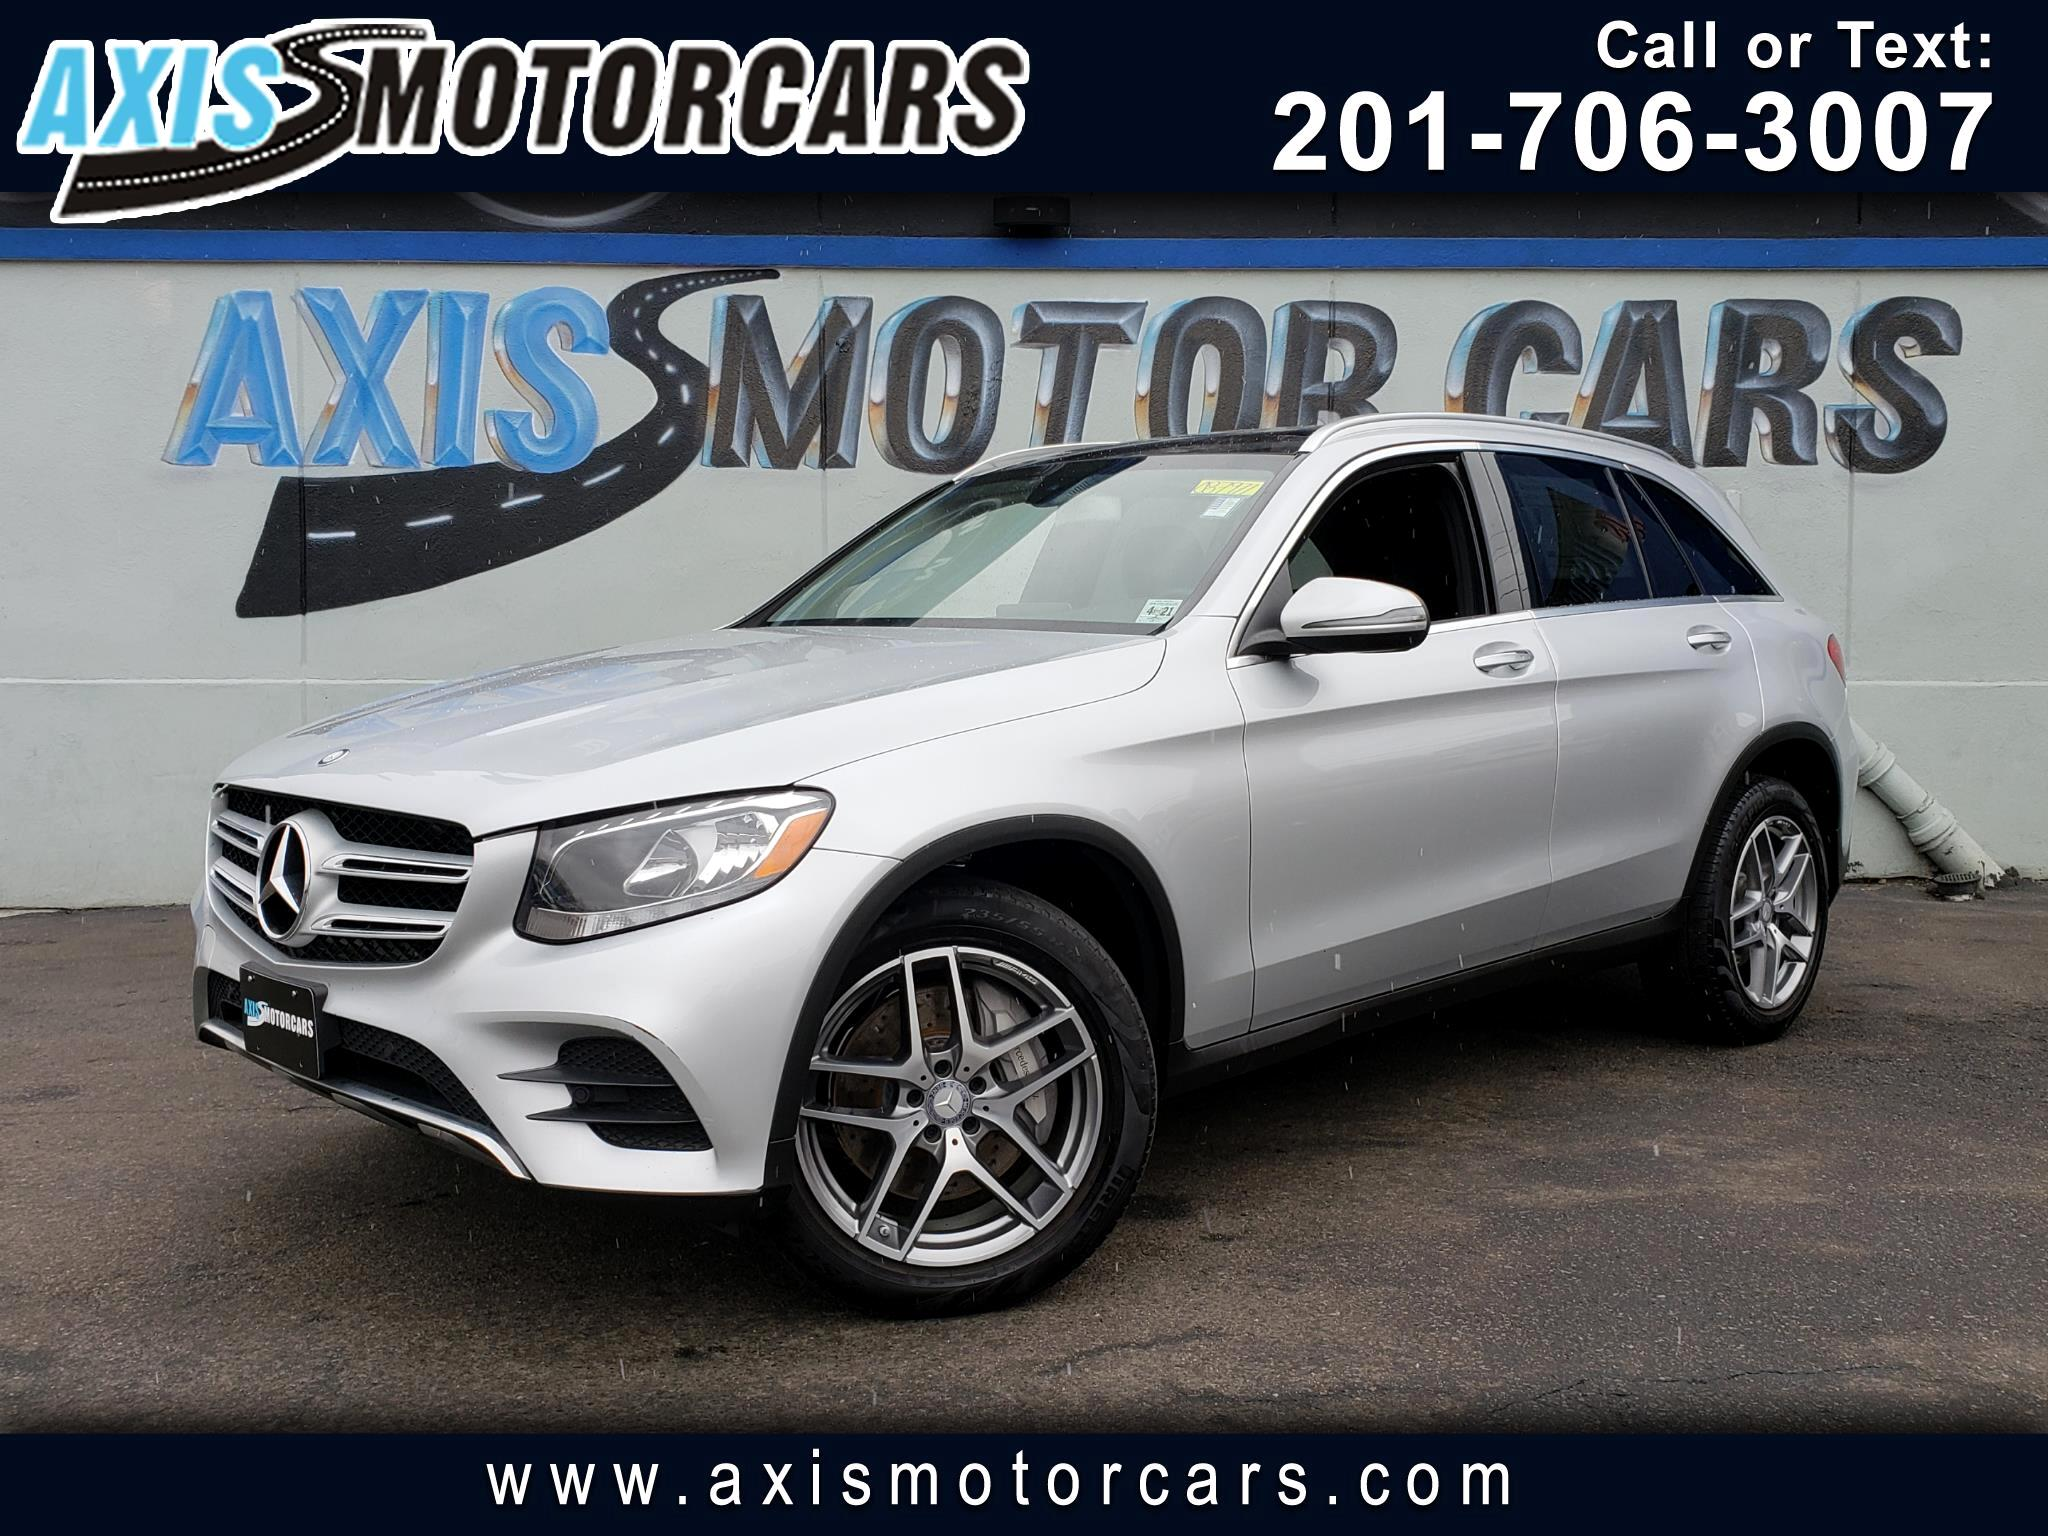 2016 Mercedes-Benz GLC 300 4MATIC w/Burmester Surround Sound System